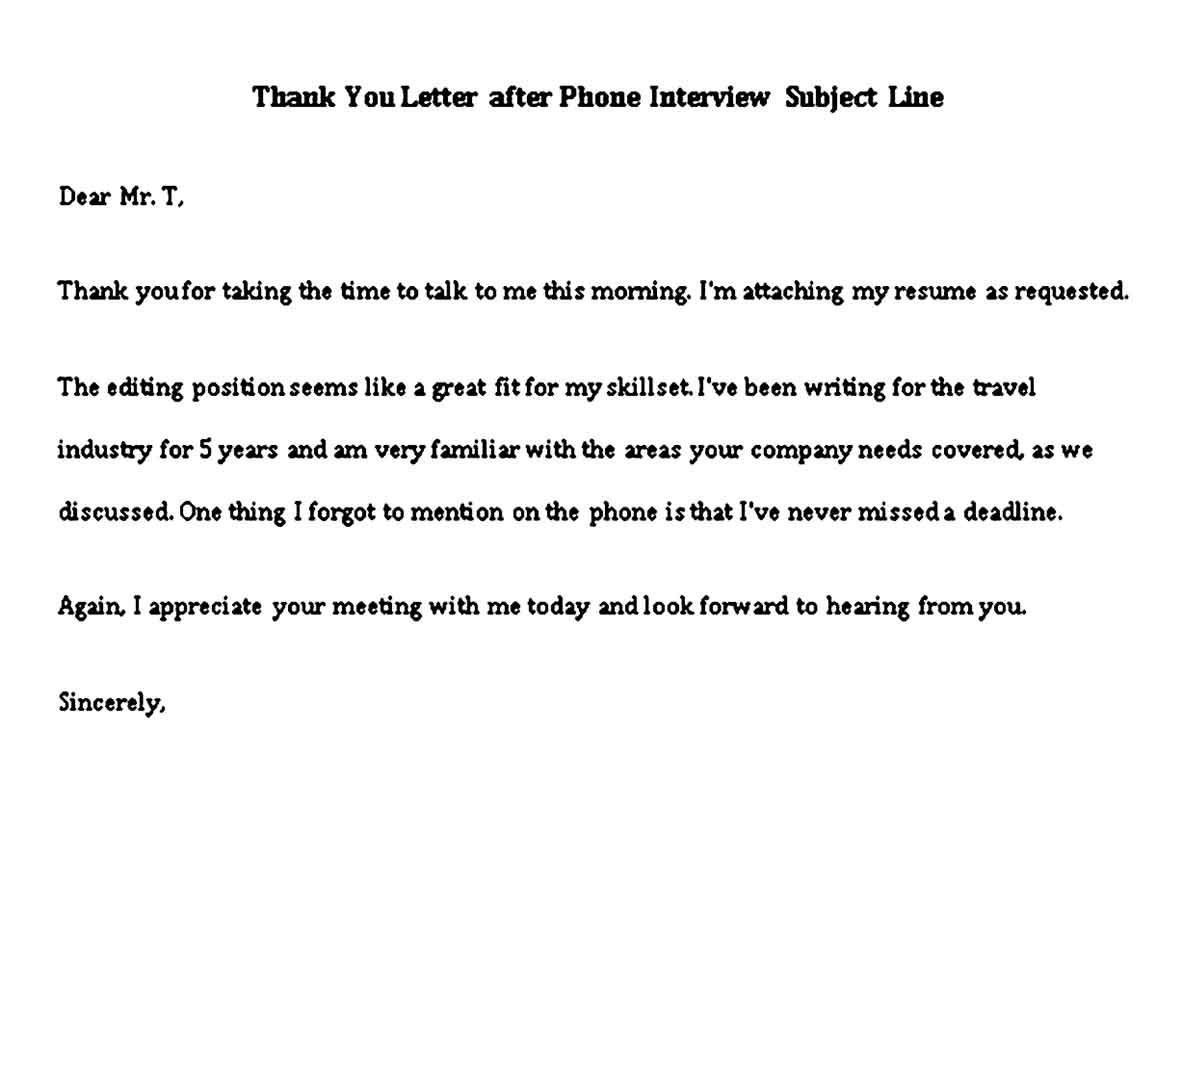 Thank You Note After Phone Interview Sample Phone Interviews Thank You Letter Thank You Notes Graduation